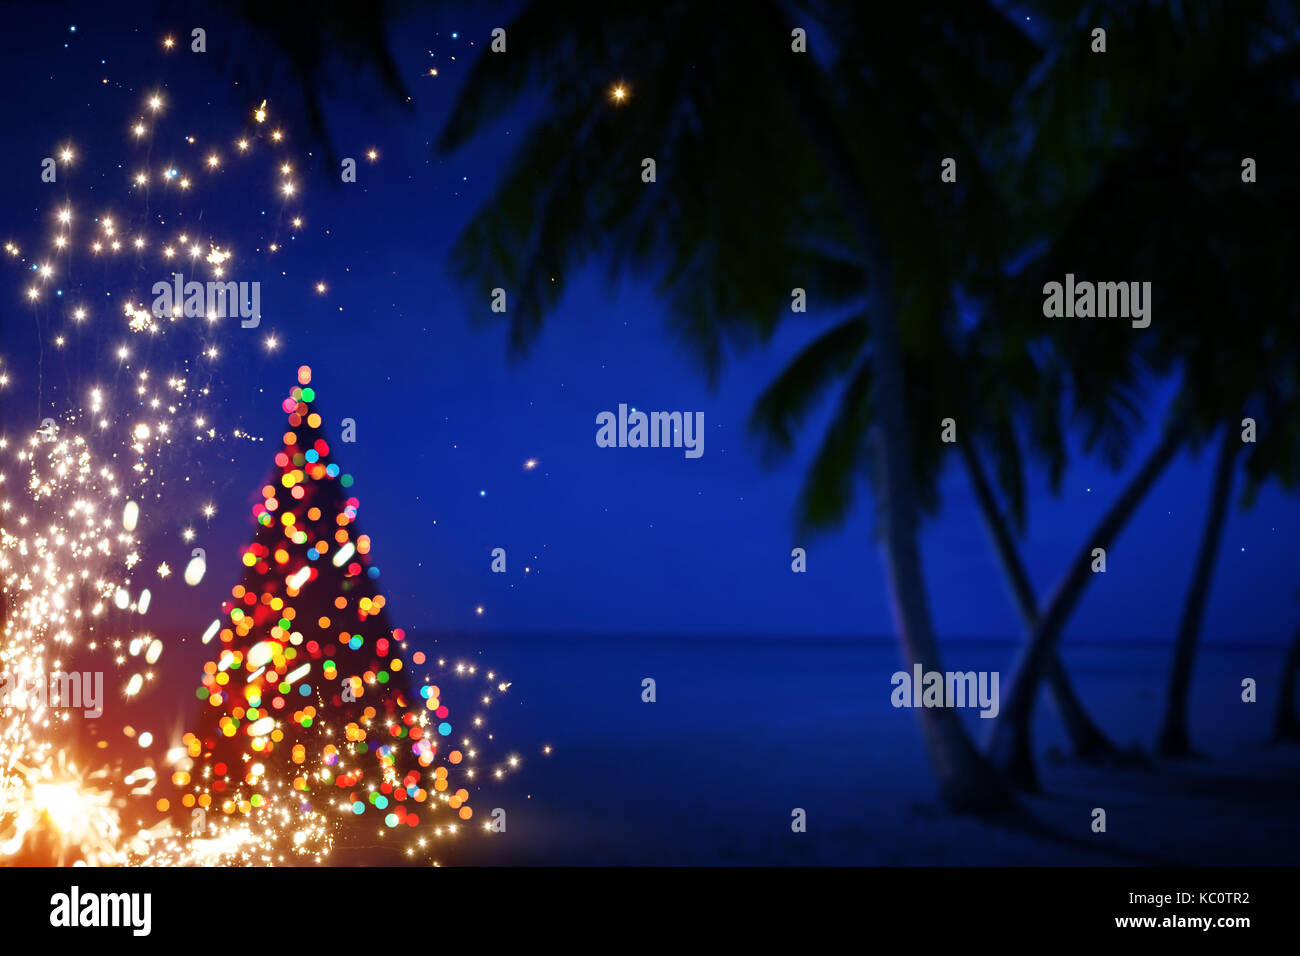 Christmas In Hawaii Stockfotos & Christmas In Hawaii Bilder - Alamy